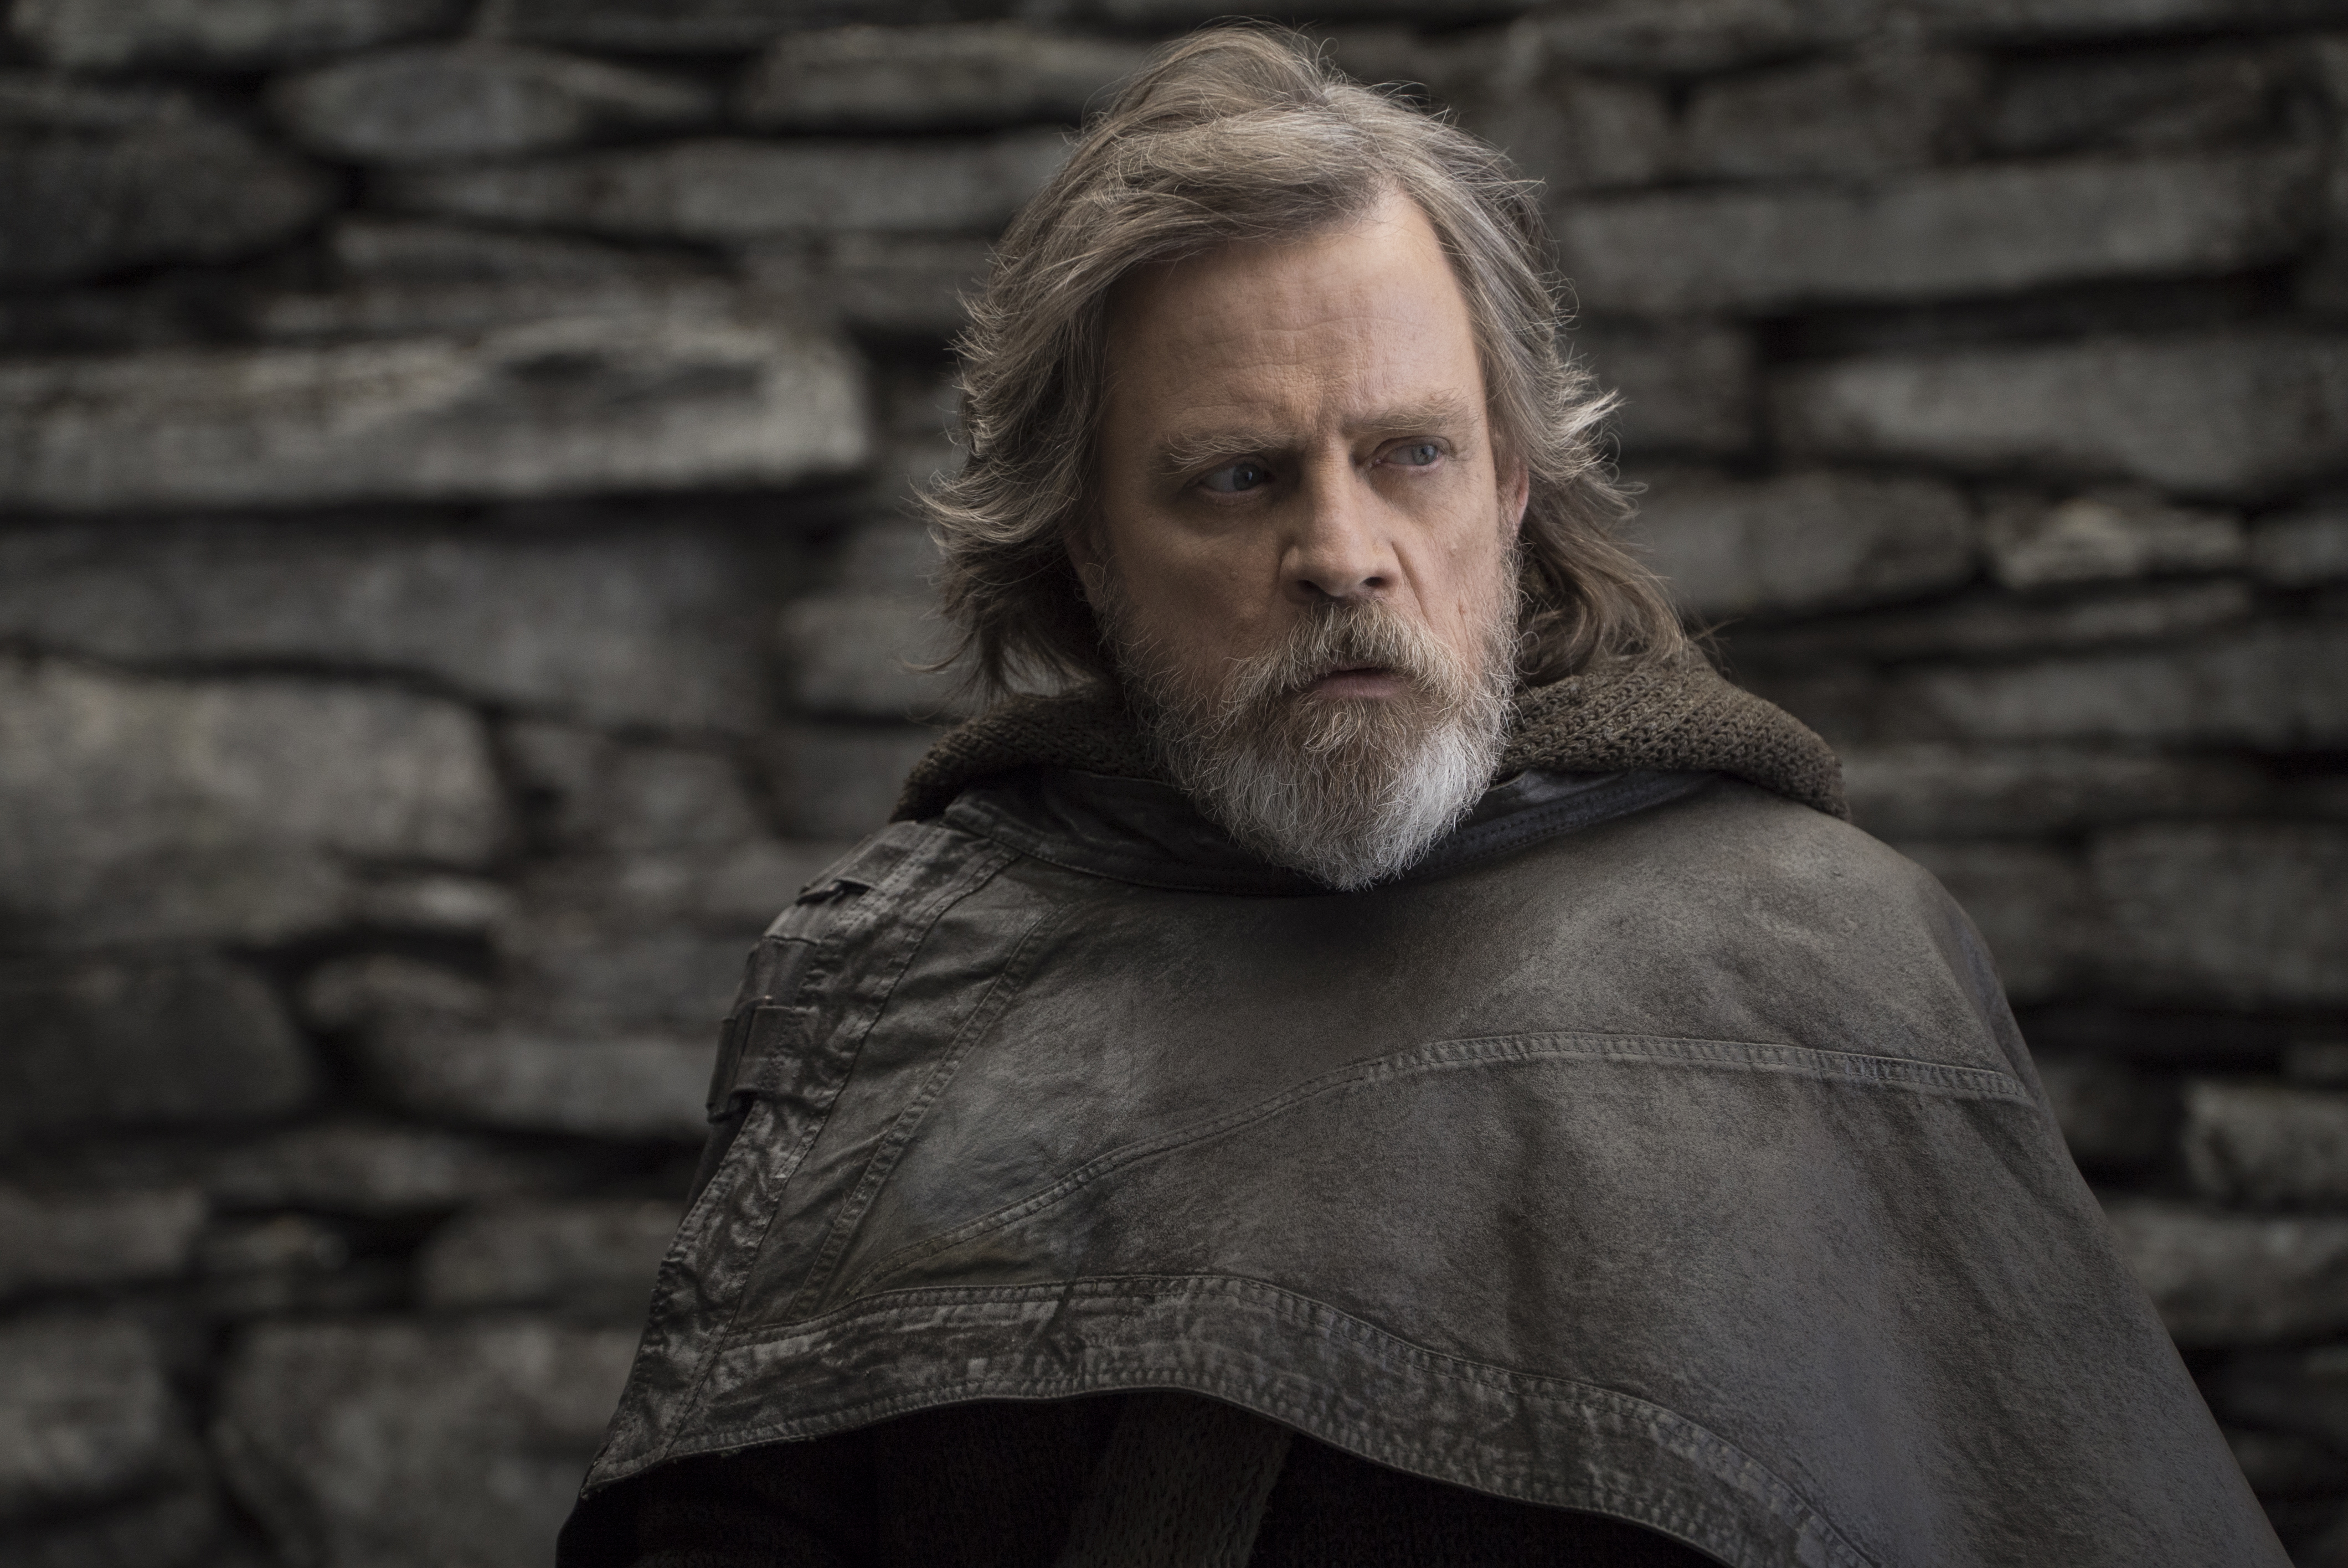 Star Wars: The Last Jedi fixes one of the prequels' worst problems